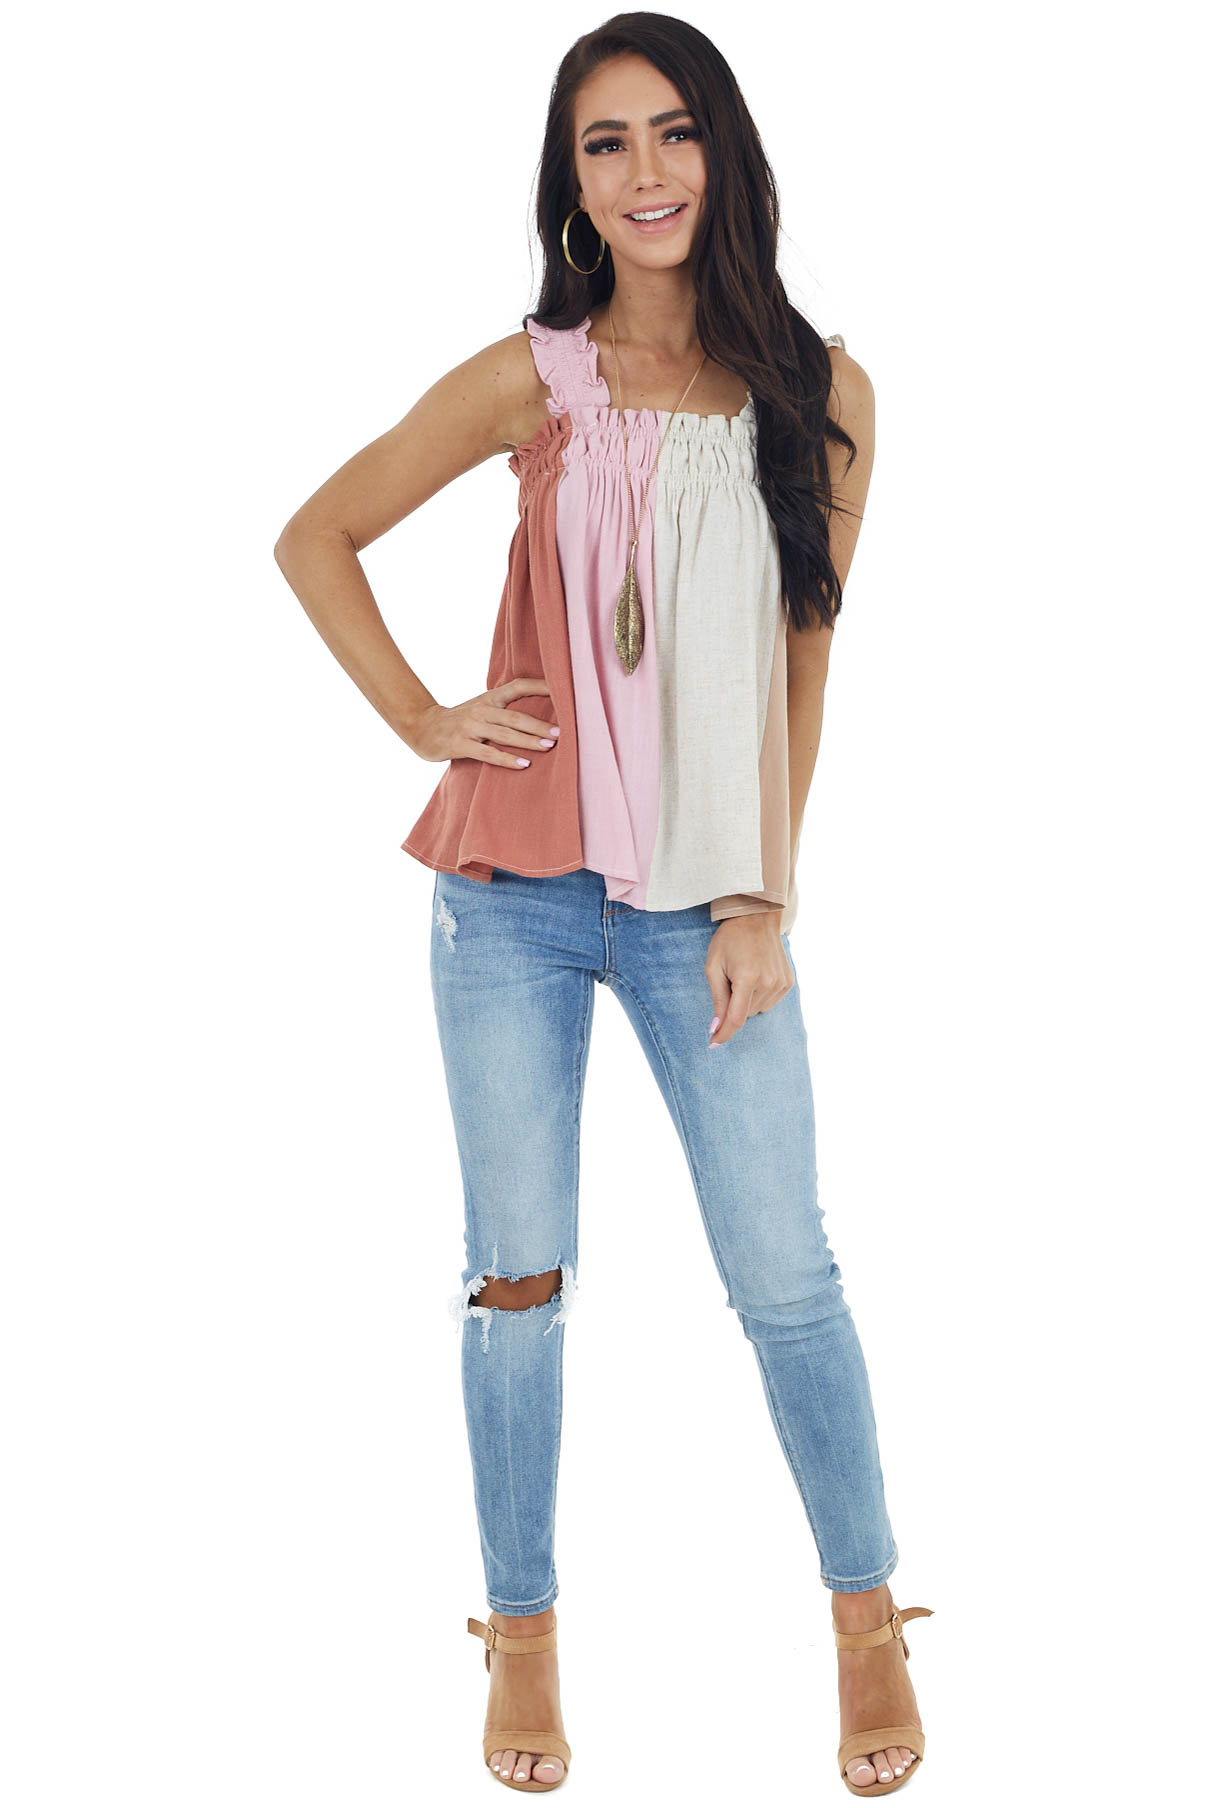 Baby Pink Colorblock Knit Tank Top with Elastic Band